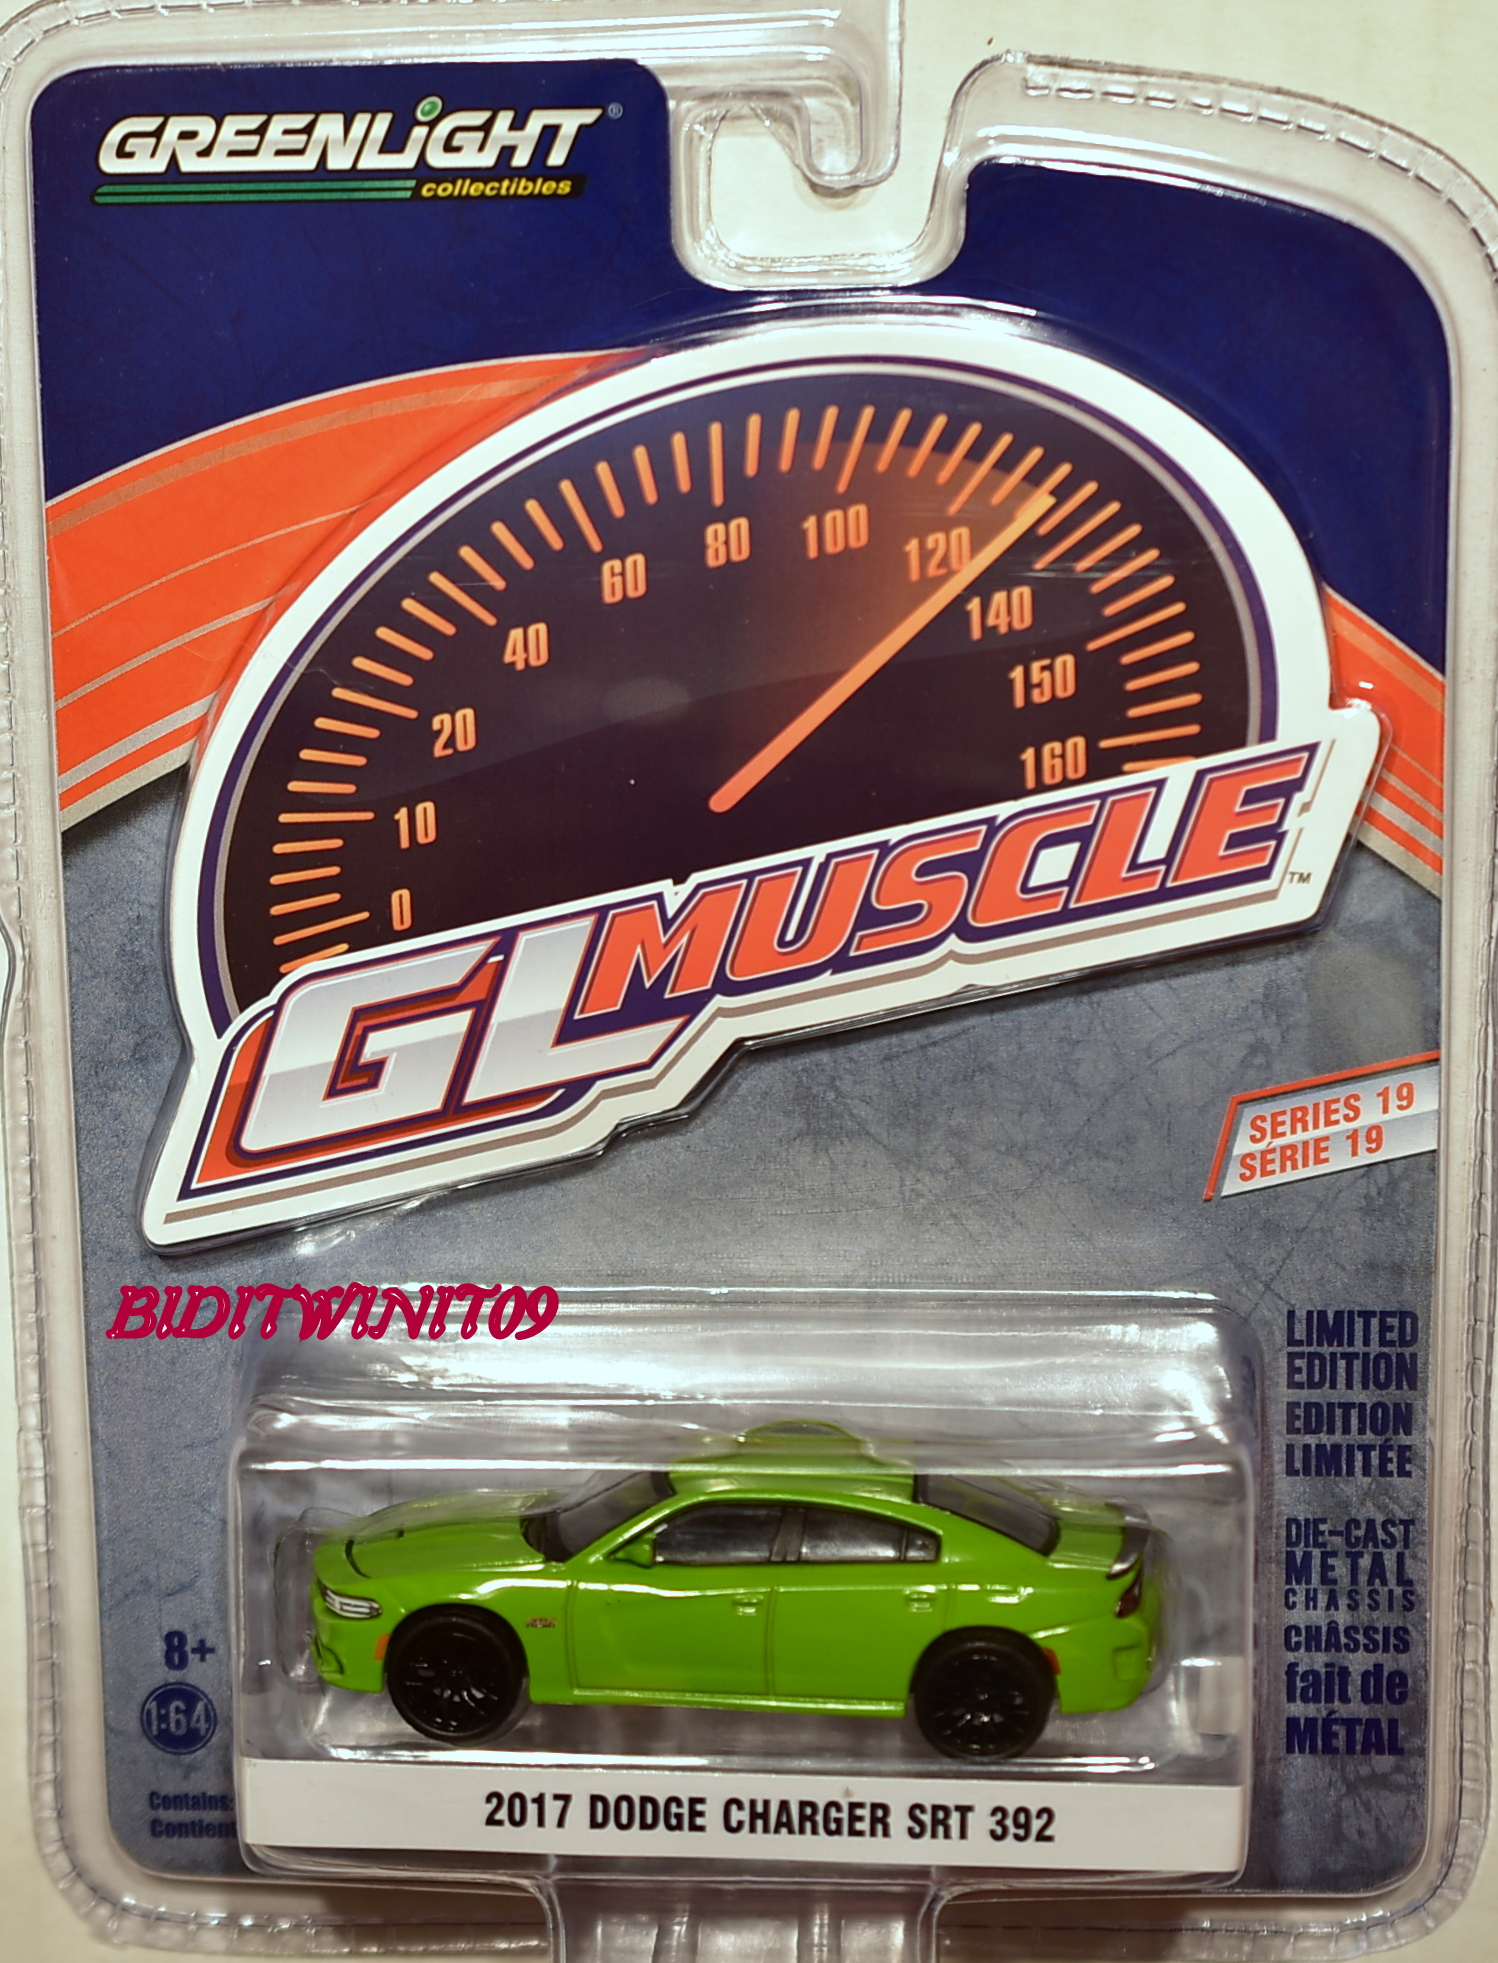 GREENLIGHT 2017 GLMUSCLE SERIES 19 2017 DODGE CHARGER SRT 392